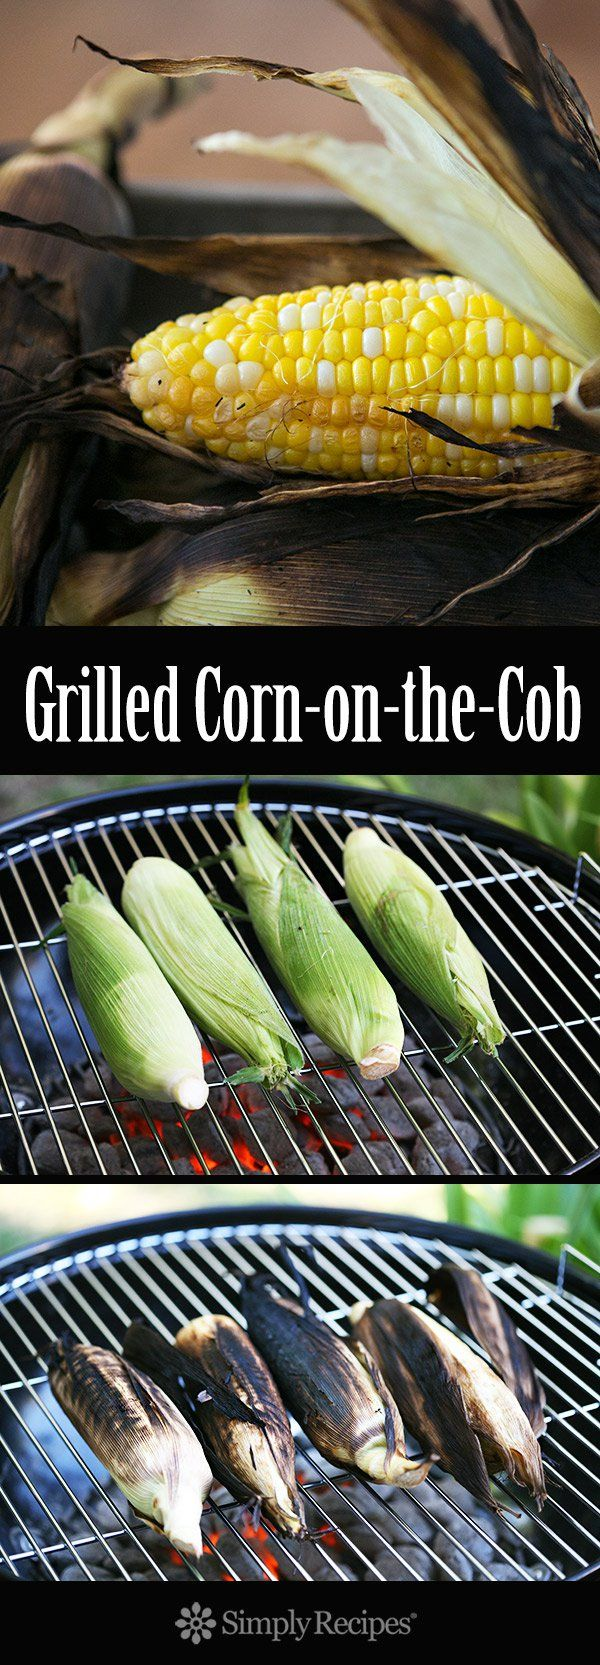 How to grill juicy, tender, grilled corn-on-the-cob, it's EASY! No soaking required. Infuse the corn with the flavor of the smoky grill without drying out the corn. On SimplyRecipes.com